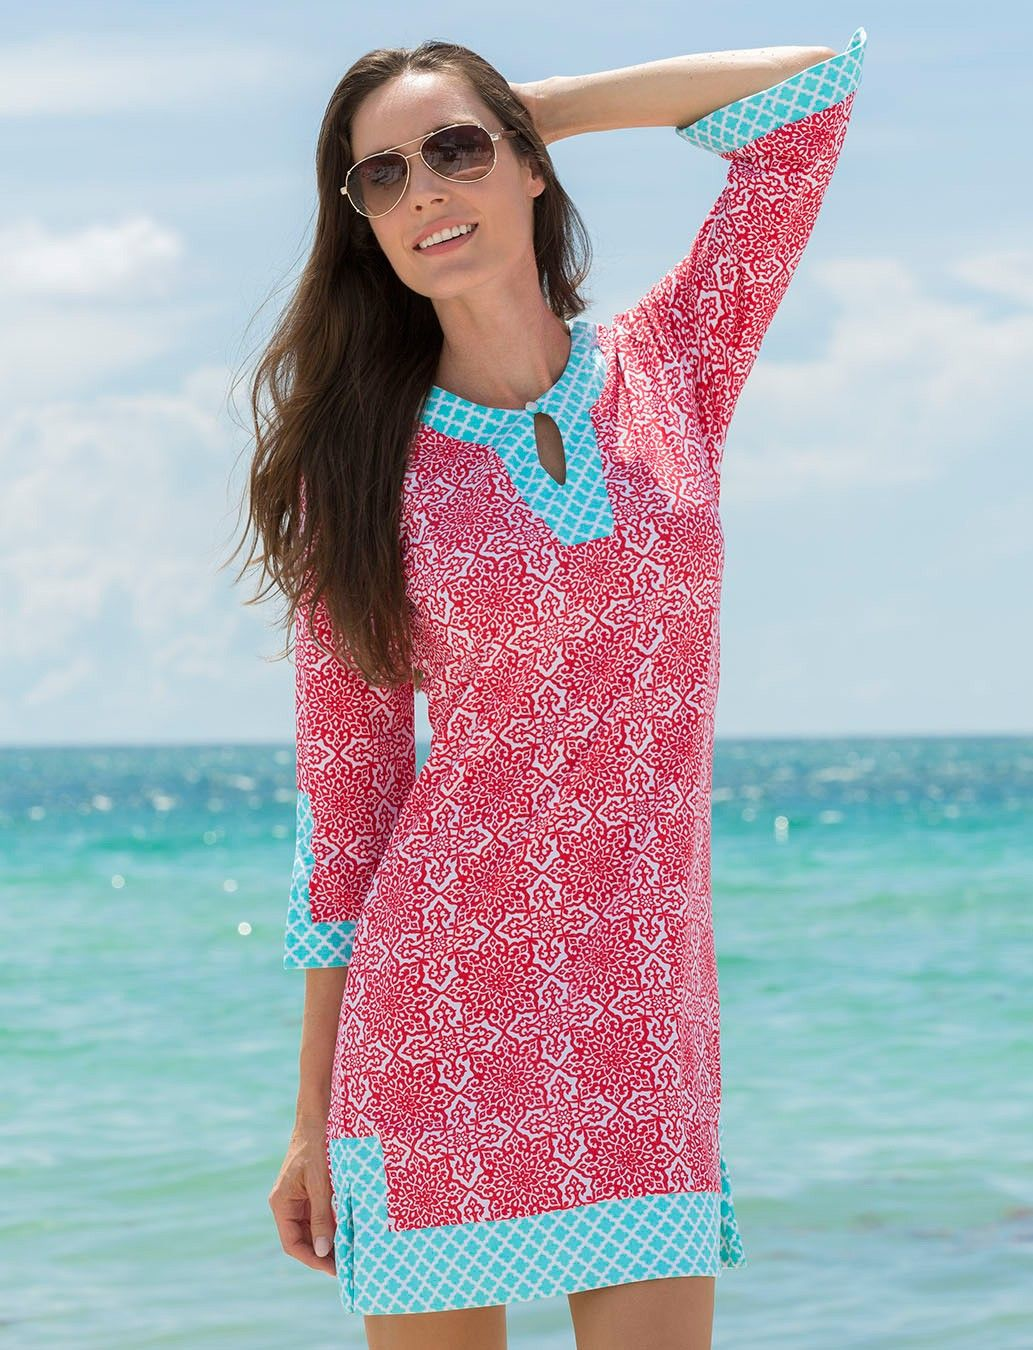 Cabana Life Womens Red and Turquoise Printed Cover Up with 50+ UV Protection #safeinthesun